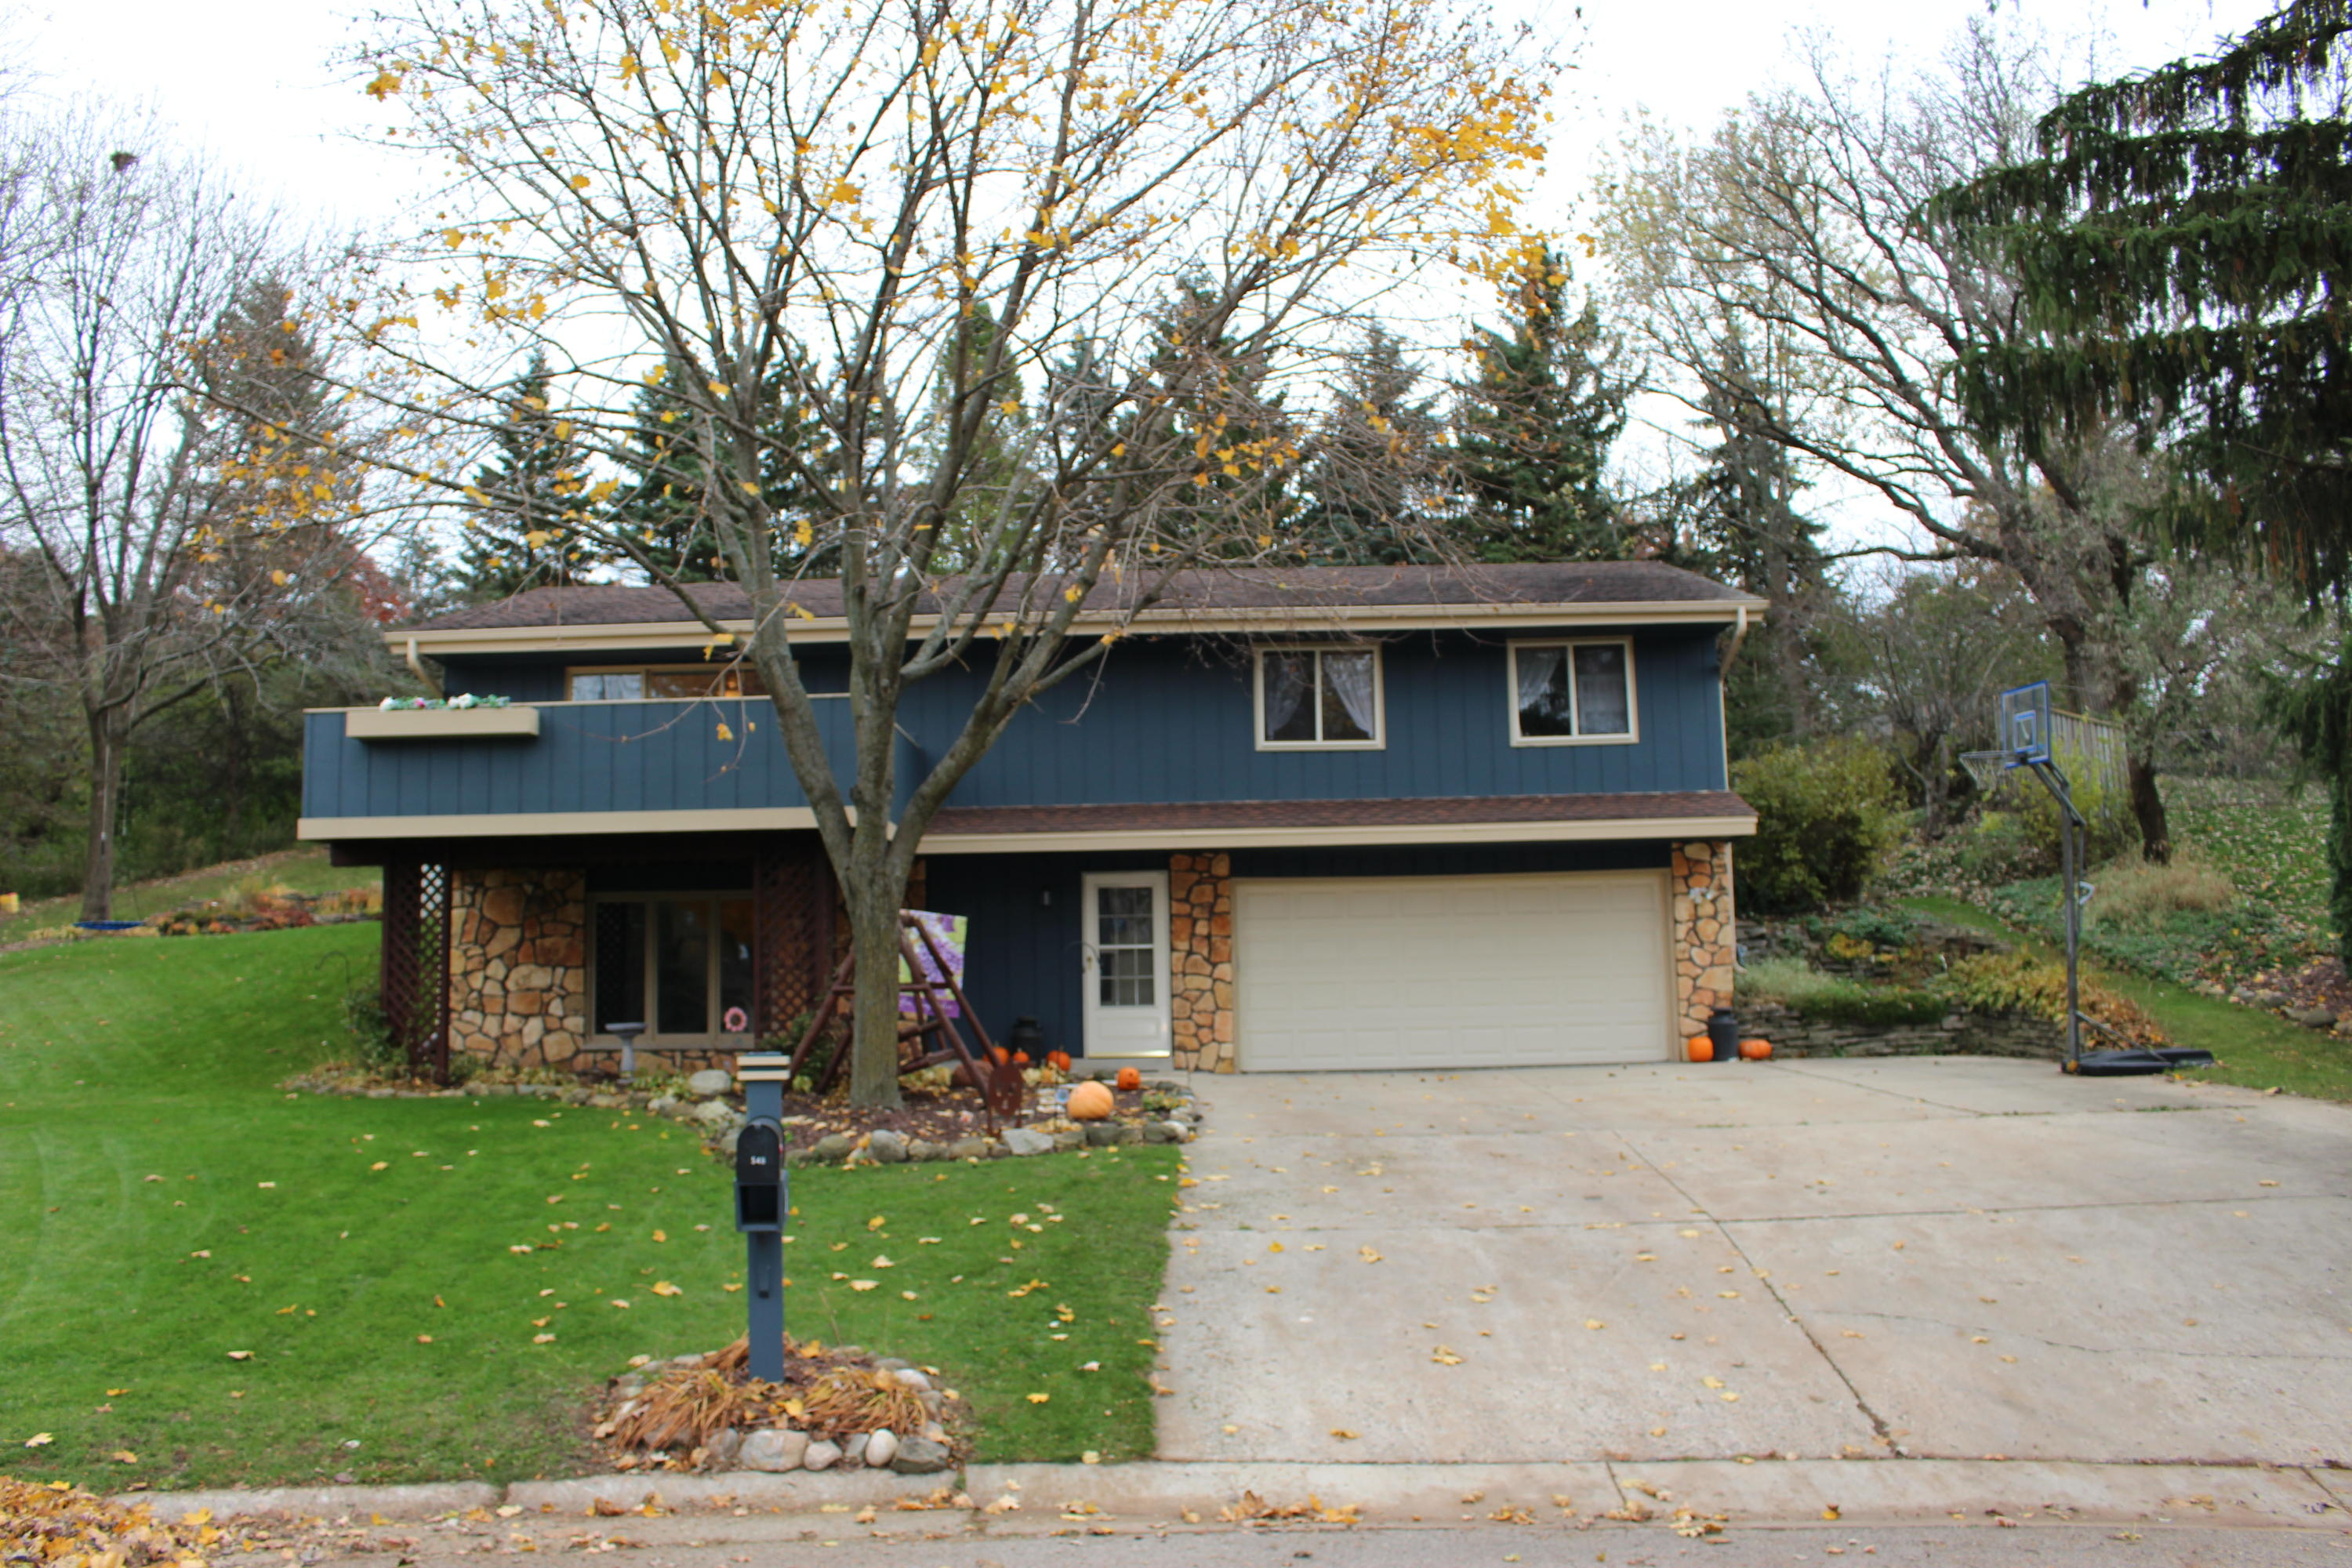 548 Saxony Ct, Hartland, Wisconsin 53029, 3 Bedrooms Bedrooms, 8 Rooms Rooms,1 BathroomBathrooms,Single-Family,For Sale,Saxony Ct,1612977